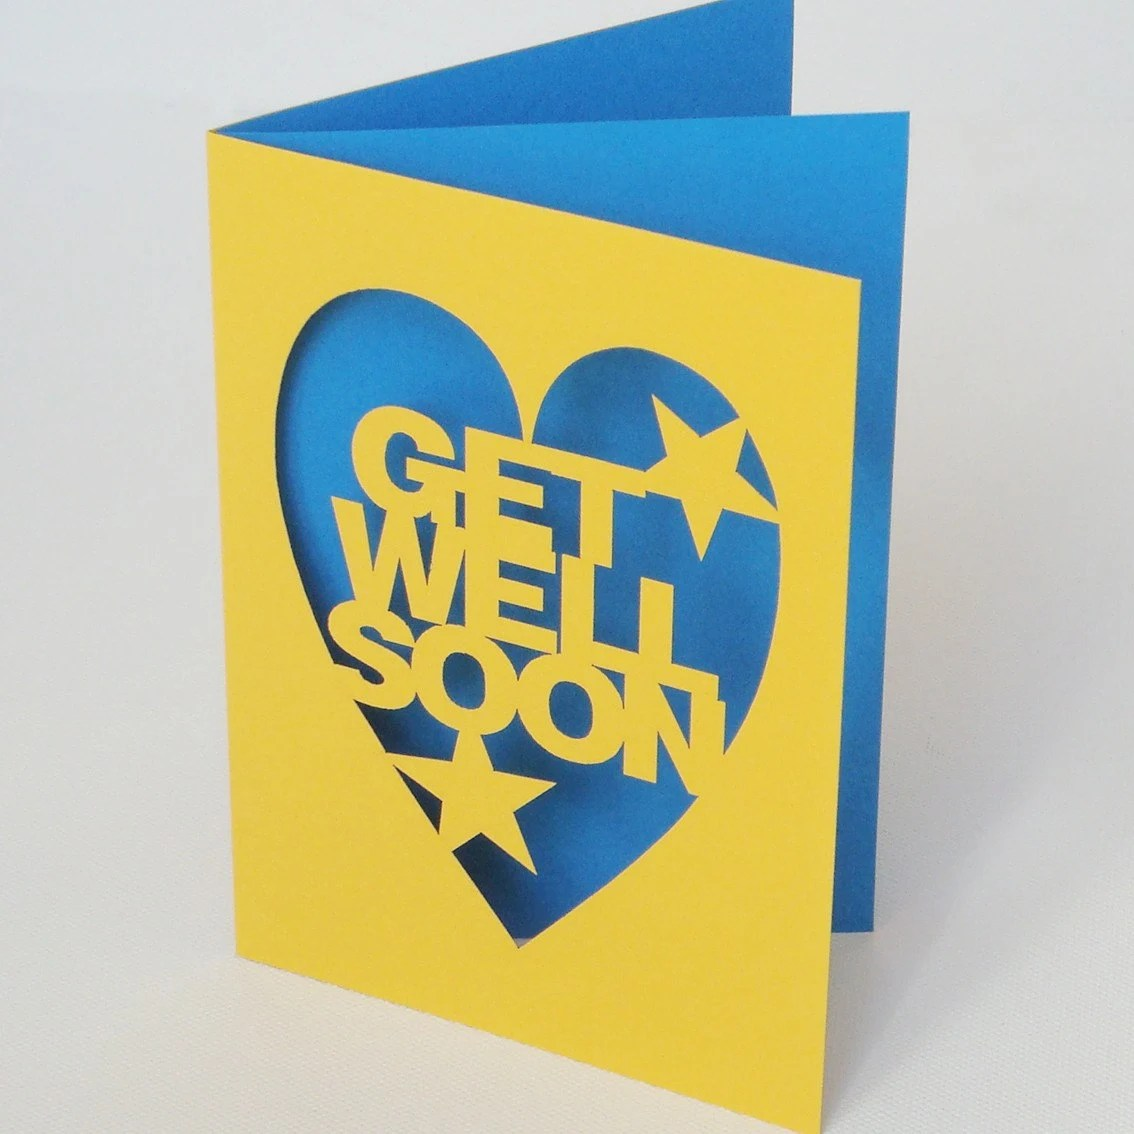 Get Well Soon by Storeyshop